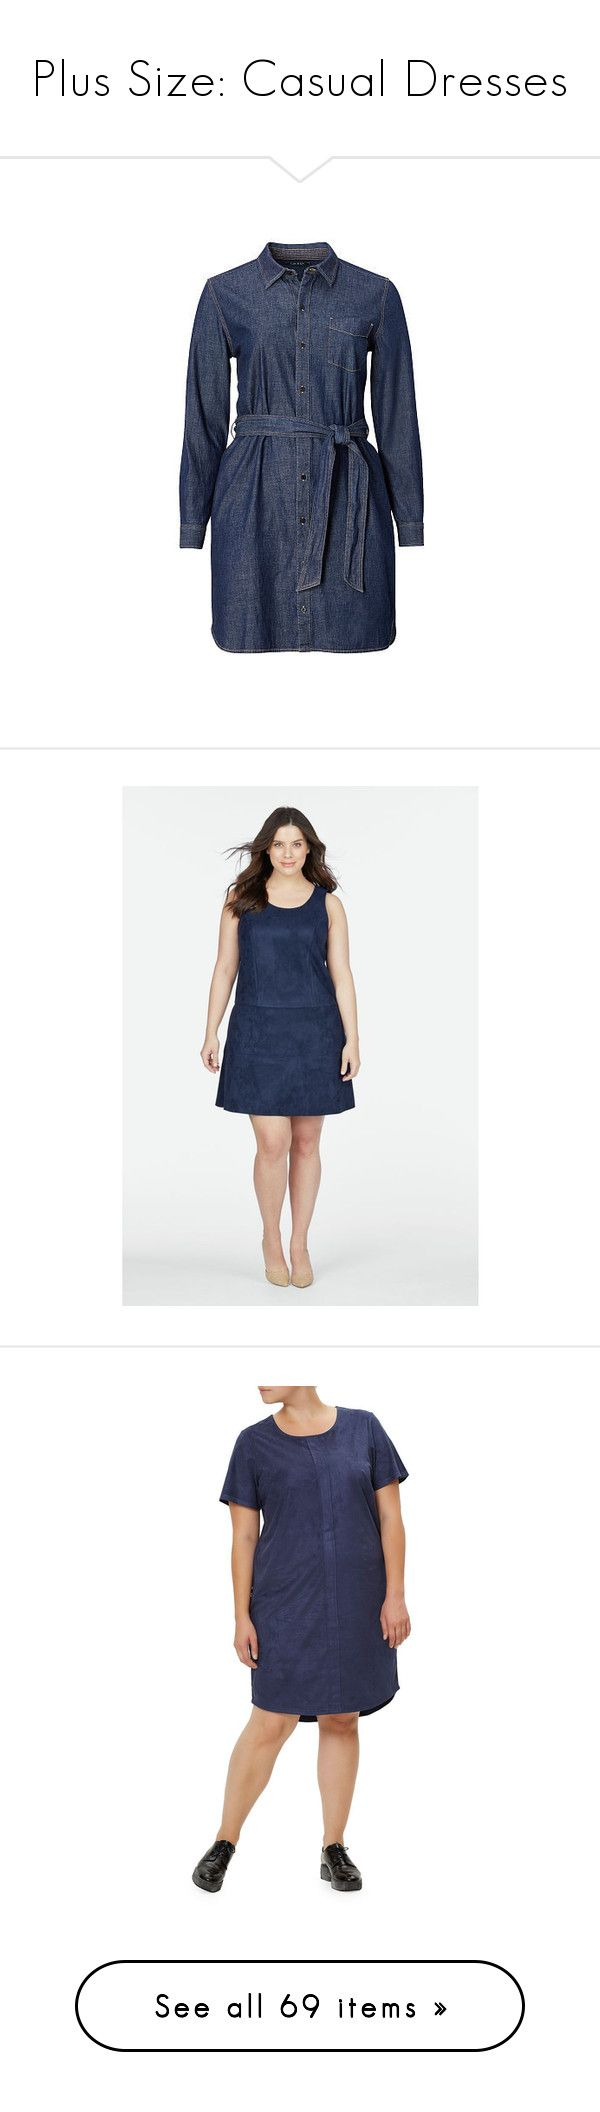 """Plus Size: Casual Dresses"" by melissab-honey-bee ❤ liked on Polyvore featuring plus size women's fashion, plus size clothing, plus size dresses, shirt dress, denim shirt dress, blue dress, blue shirt dress, long-sleeve shirt dresses, blue and flared dresses"